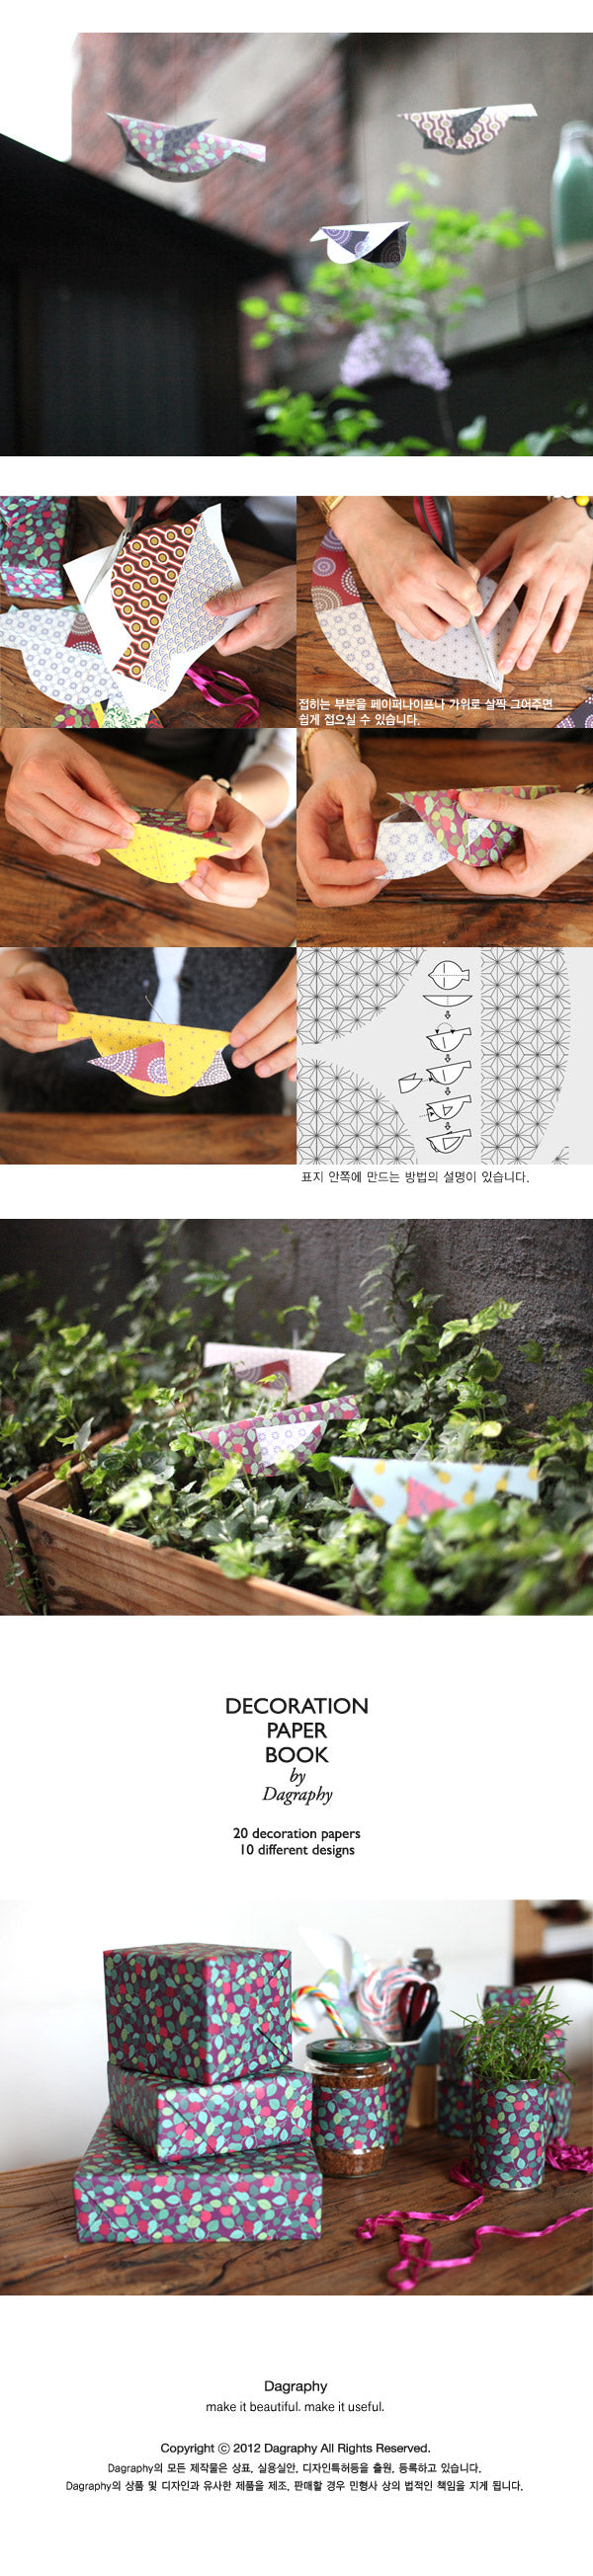 Dagraphy Korean Stationery | Decoration Patterned Paper Deco Craft Book